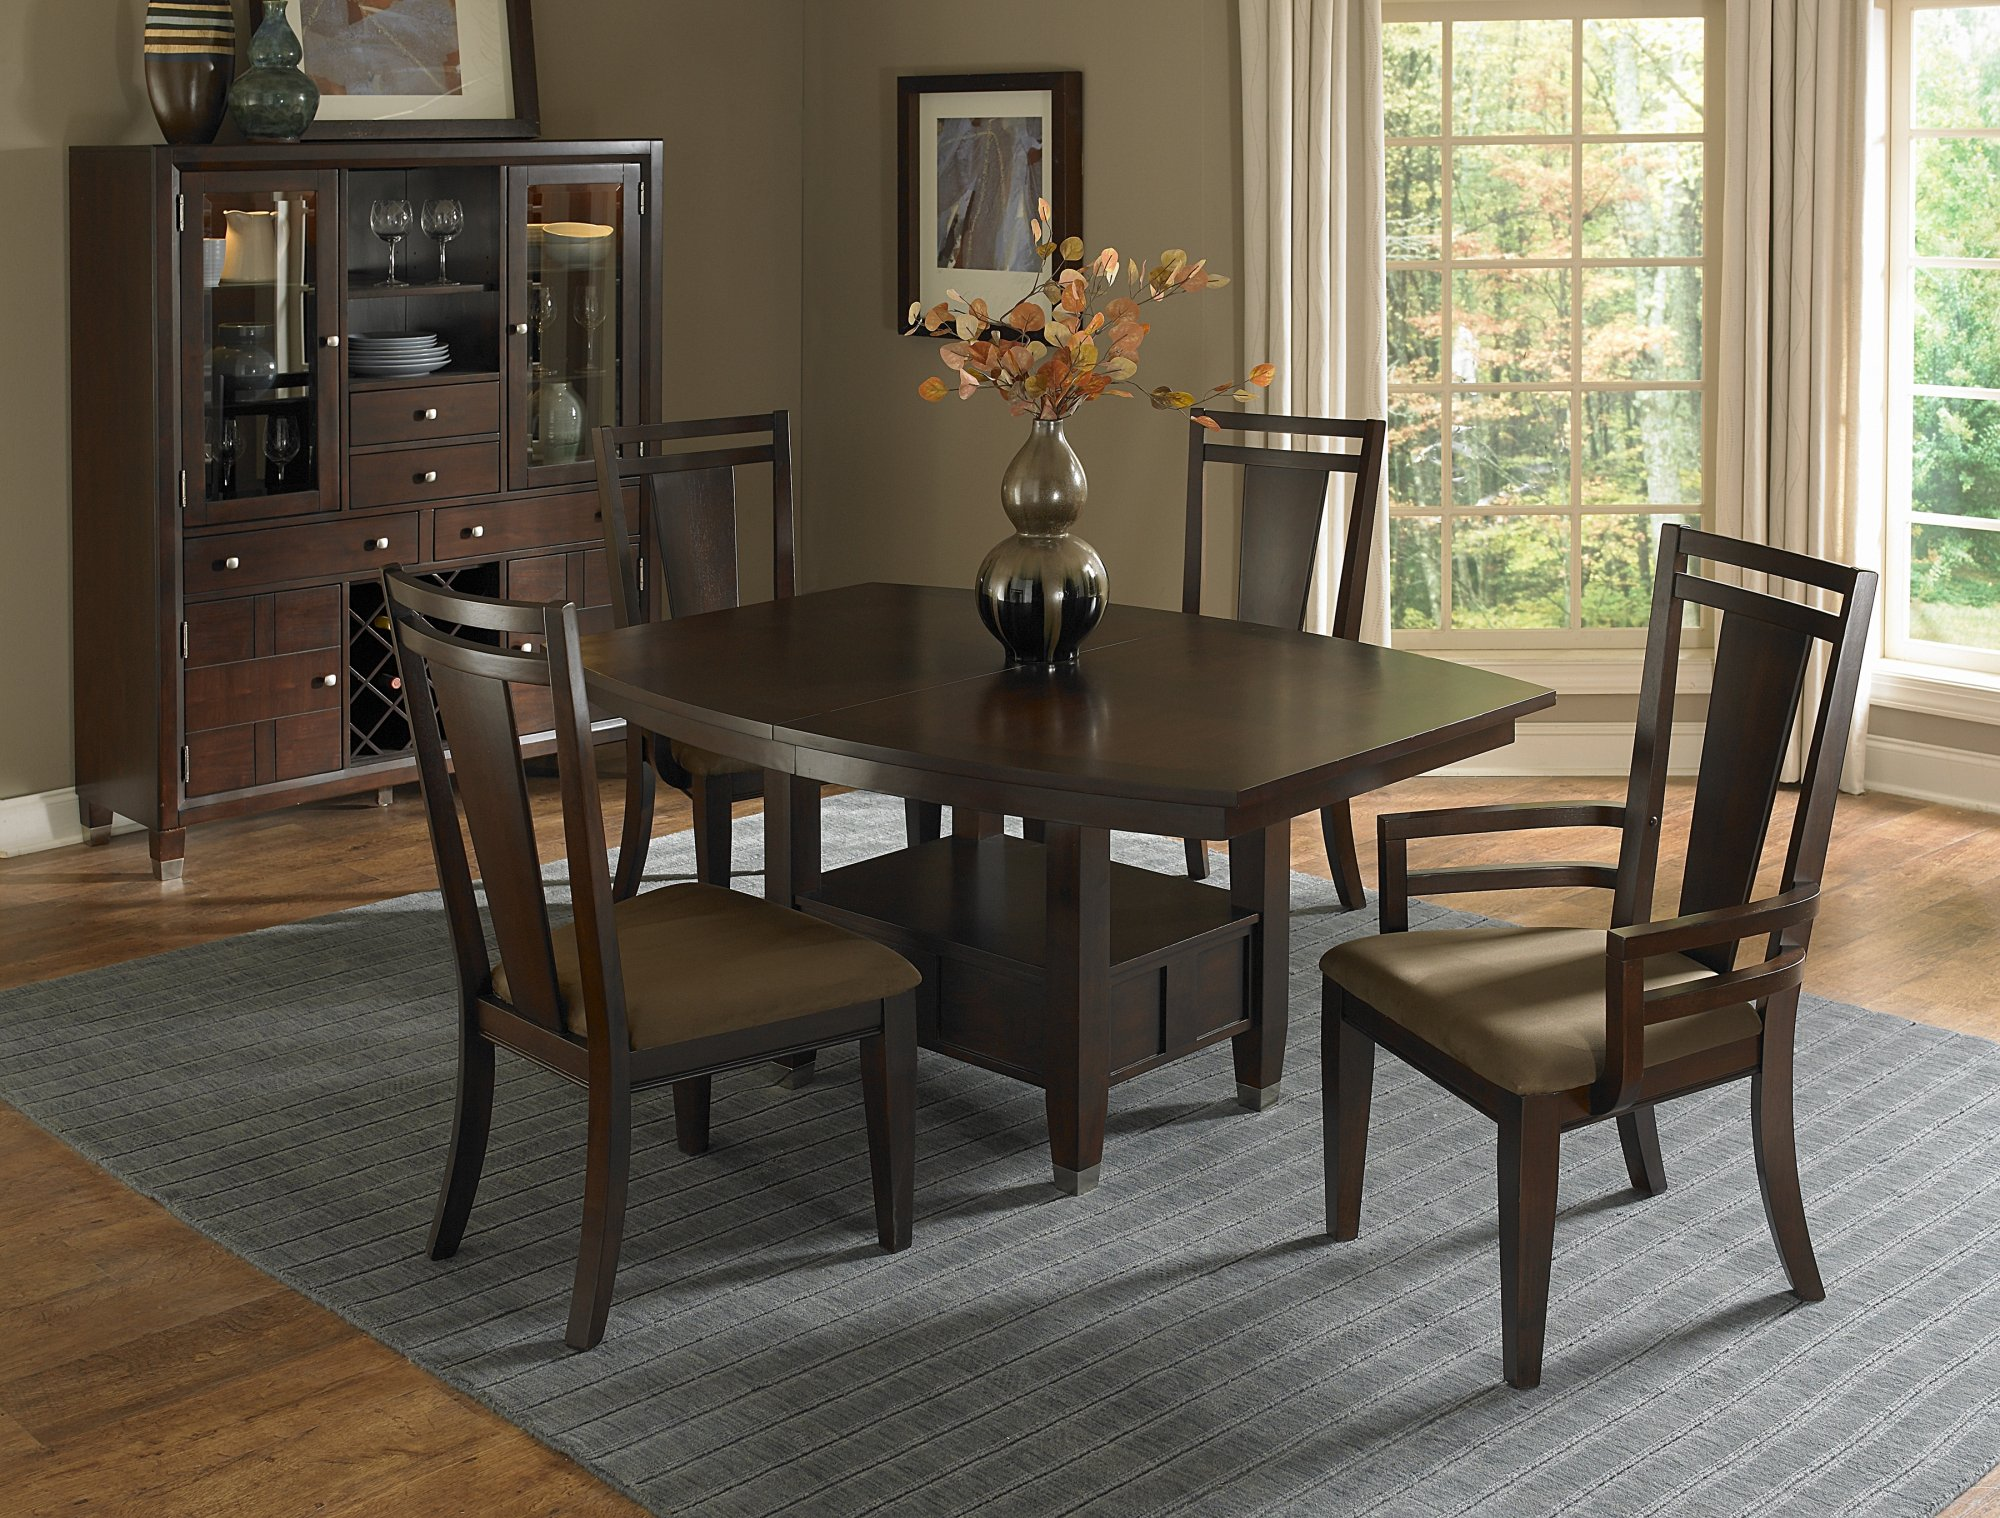 elegant dining table set by broyhill furniture on gray rug and wooden floor for dining room decor ideas